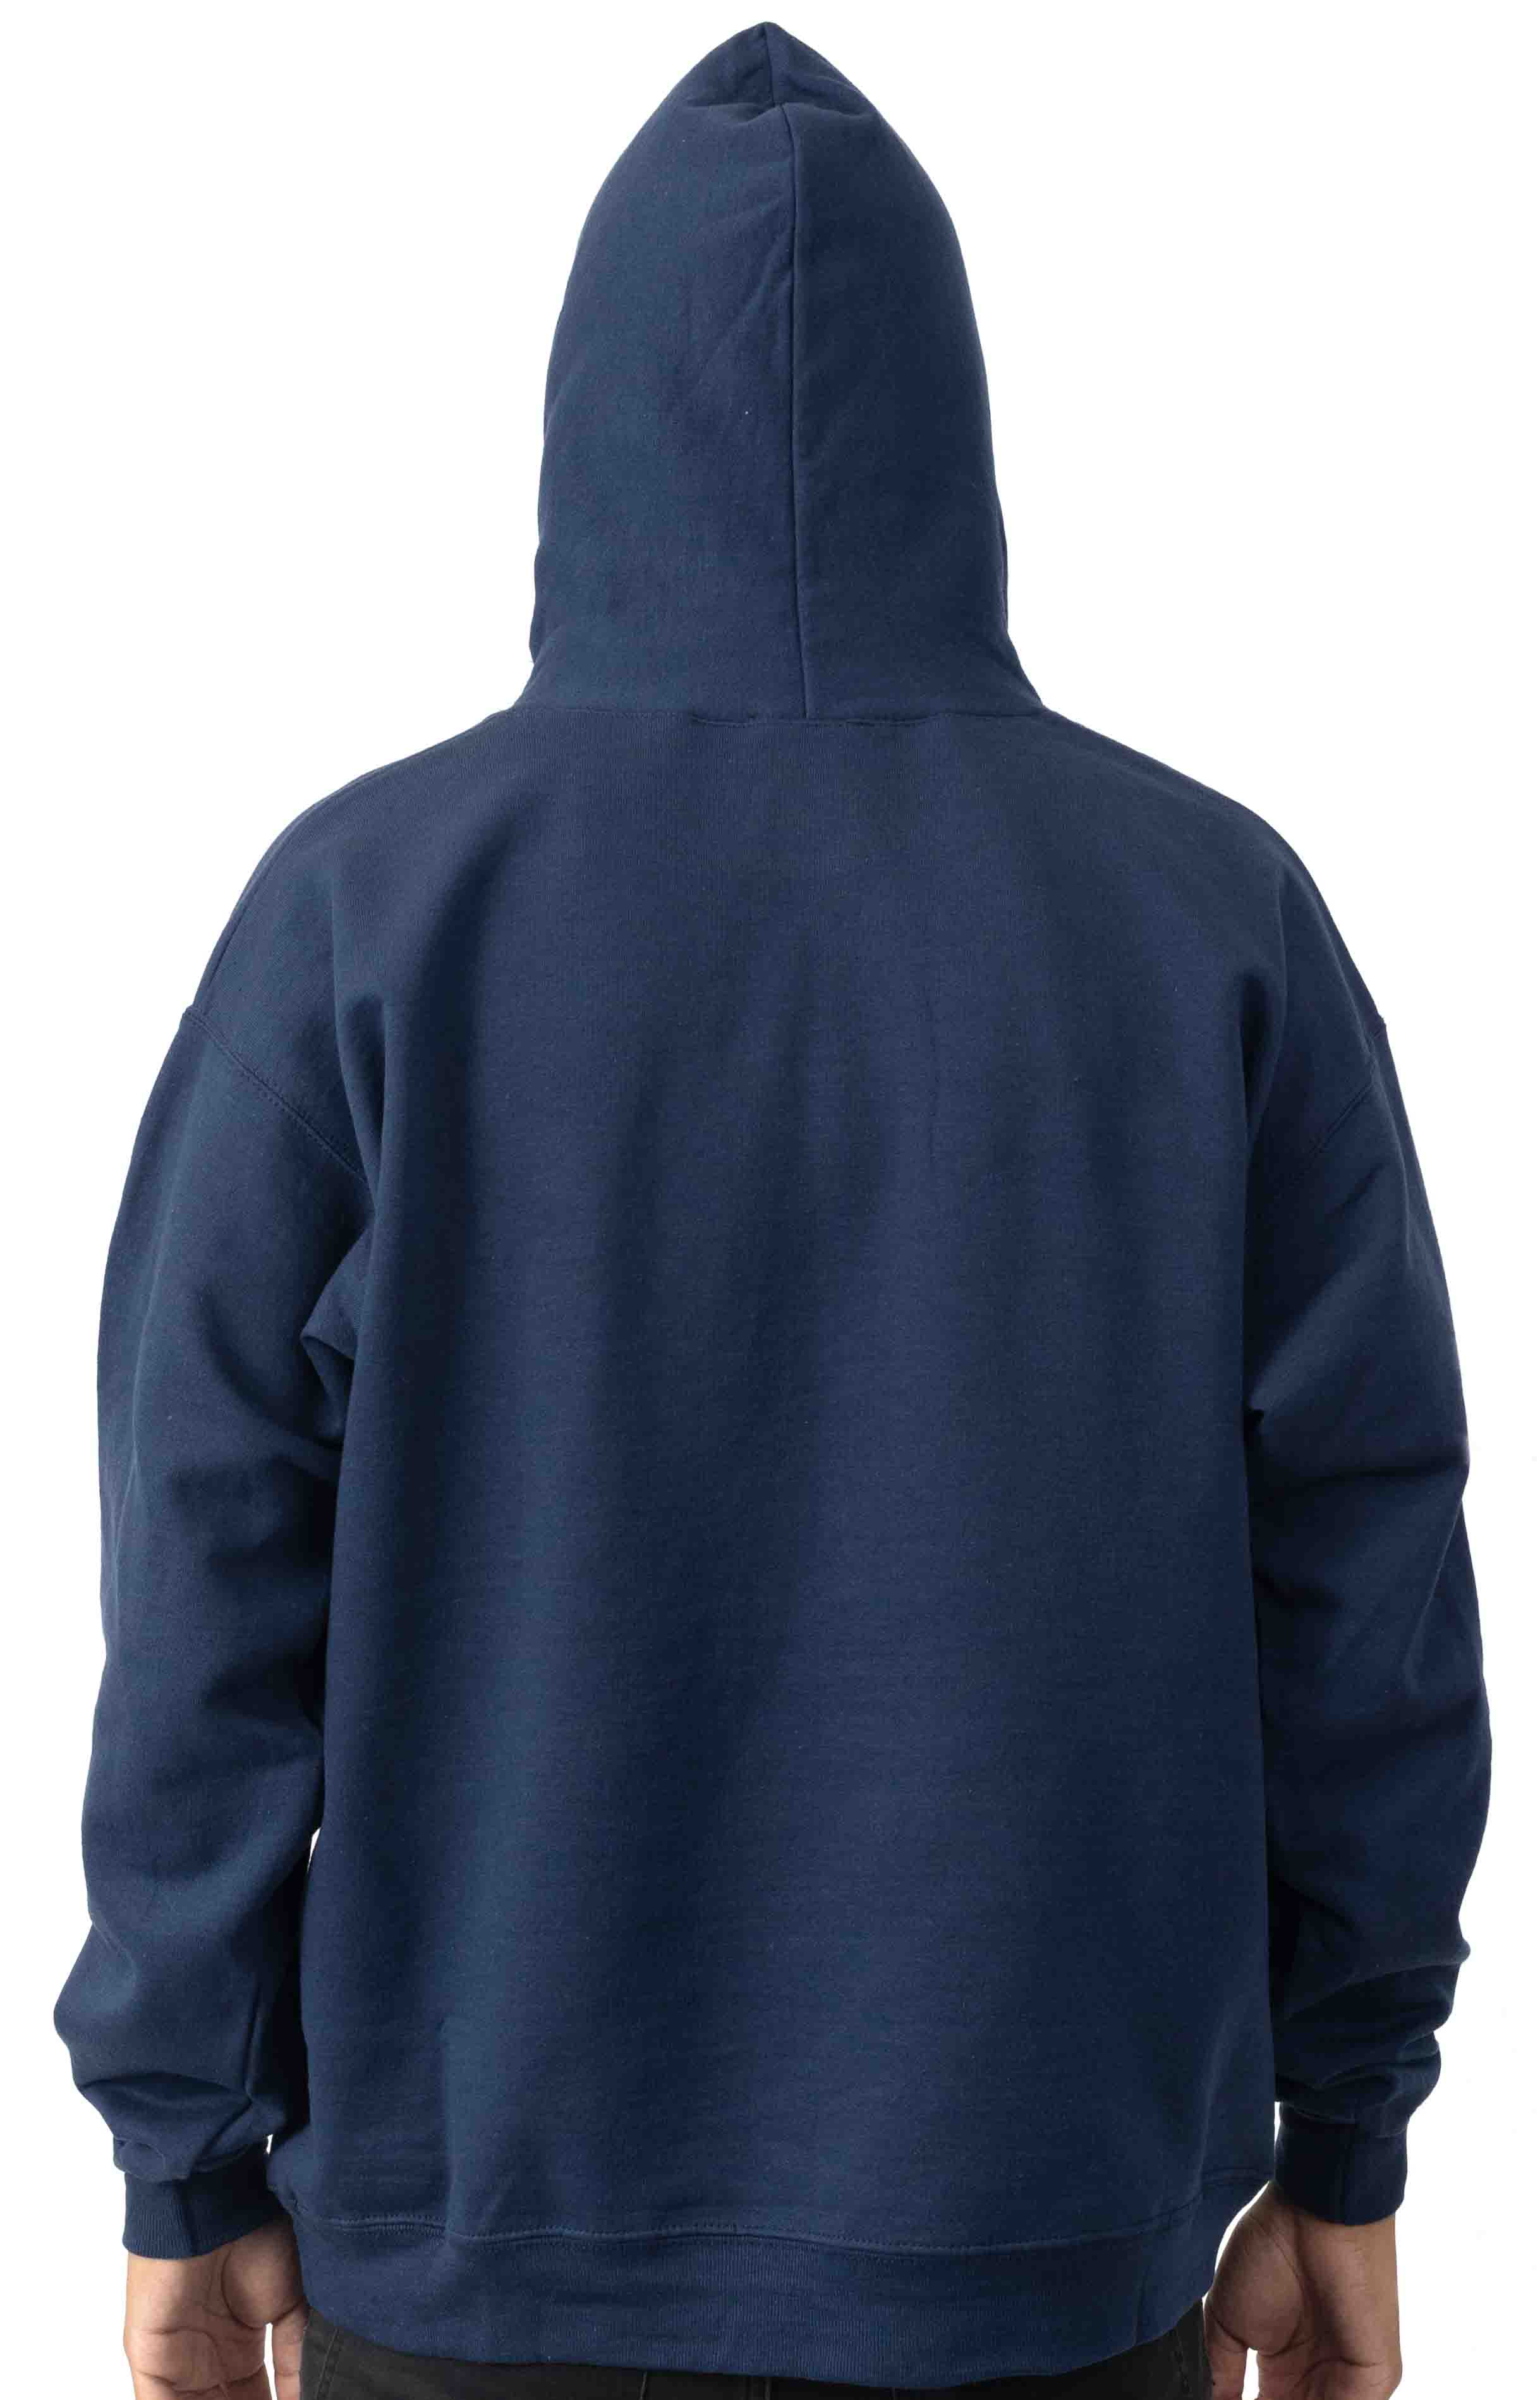 Fire Logo Pullover Hoodie - Navy  3